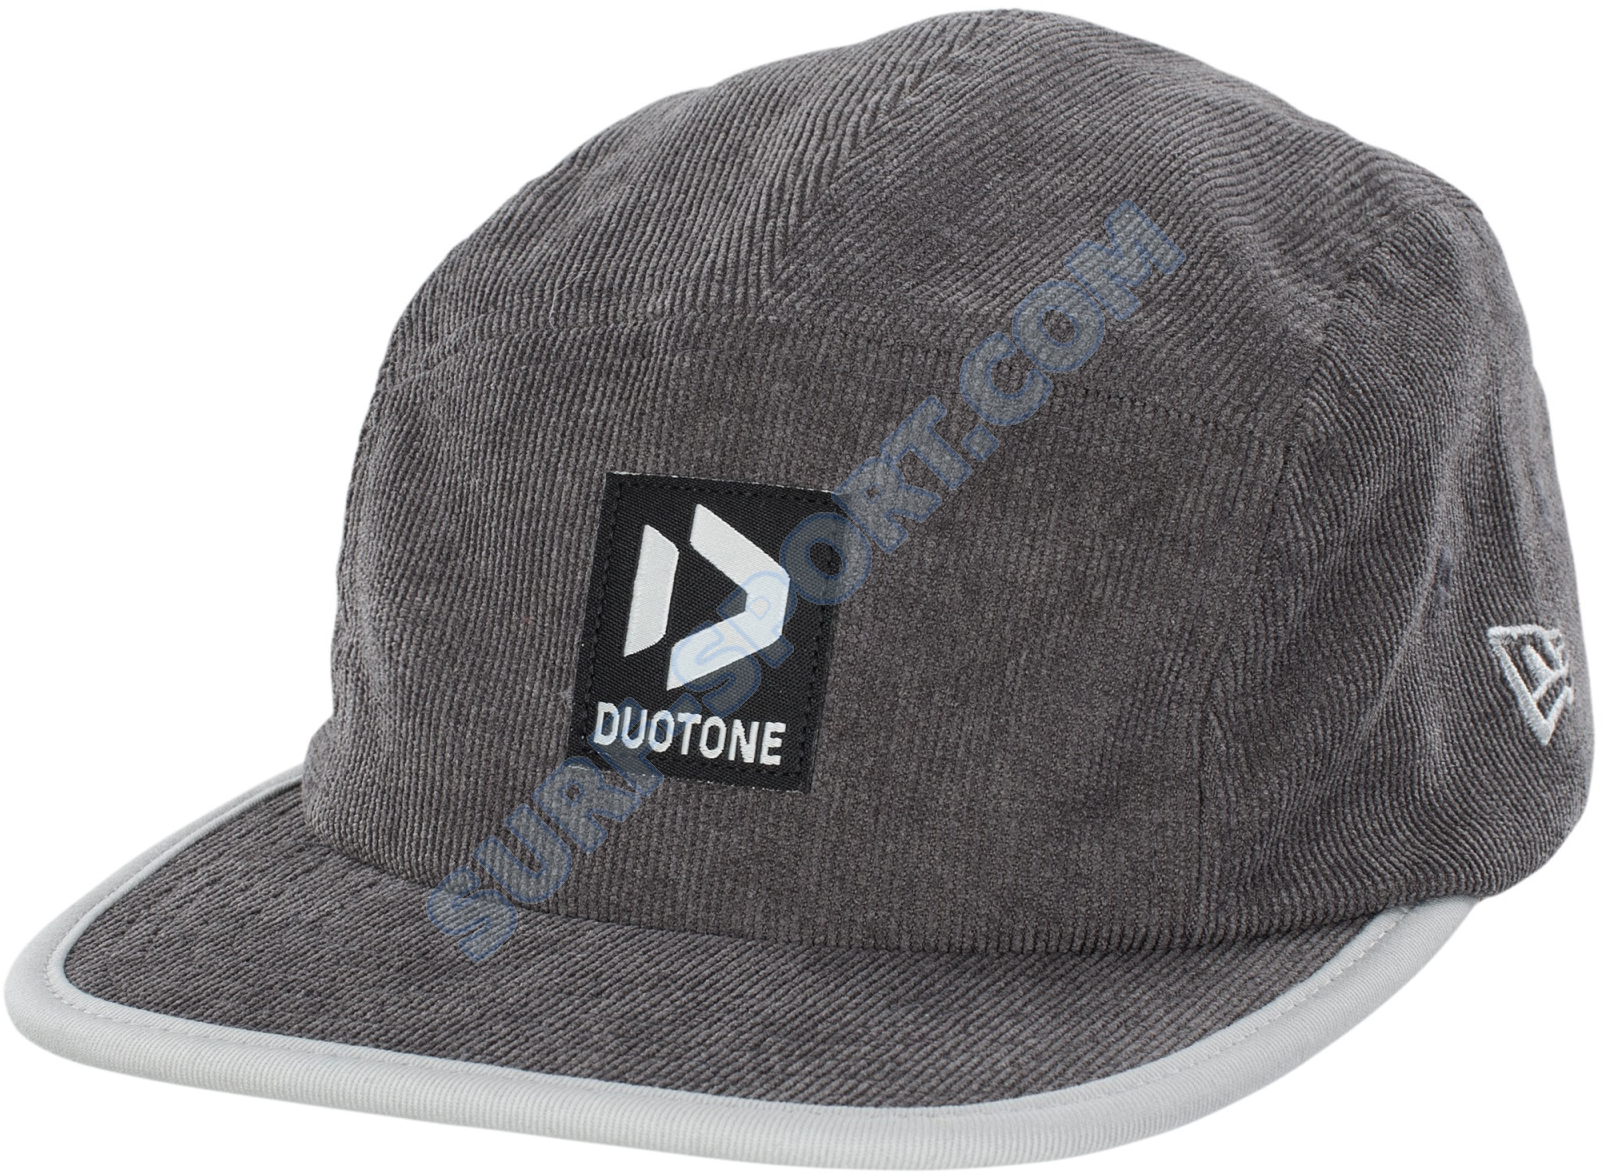 44200-5913_Duotone-New Era Cap-corduroy-dark gray.png